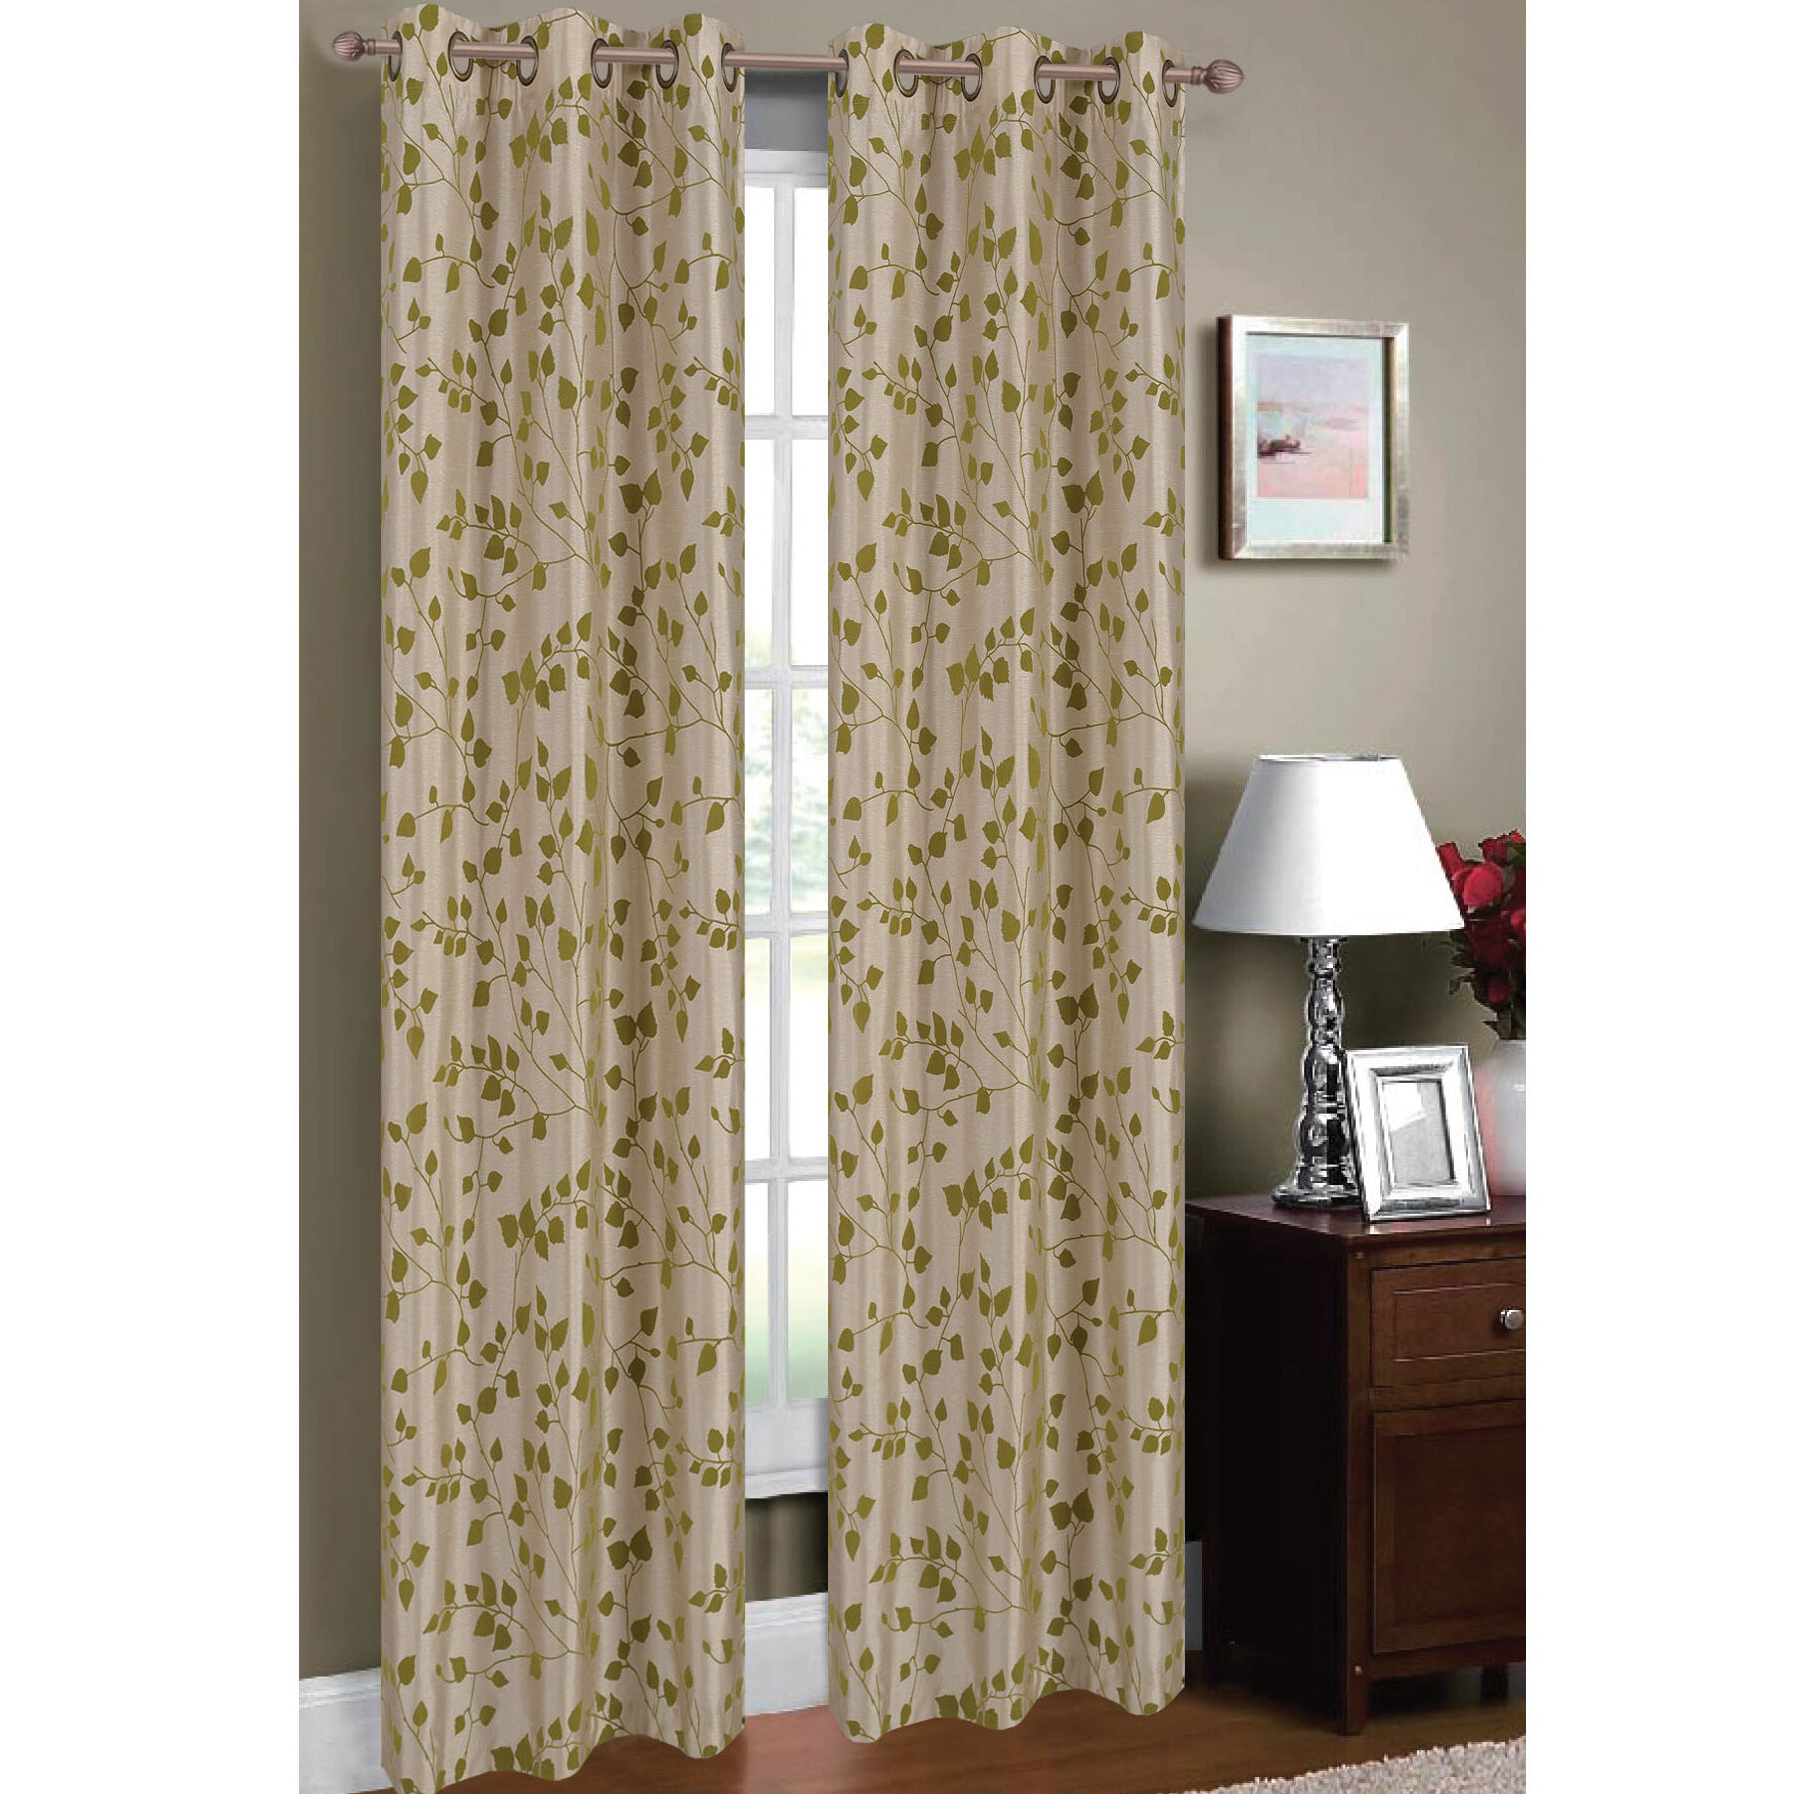 Luxury Collection Cranston Sheer Curtain Panel Pairs Pertaining To Well Known Meadow Nature/floral Sheer Grommet Curtain Panels (Gallery 20 of 20)